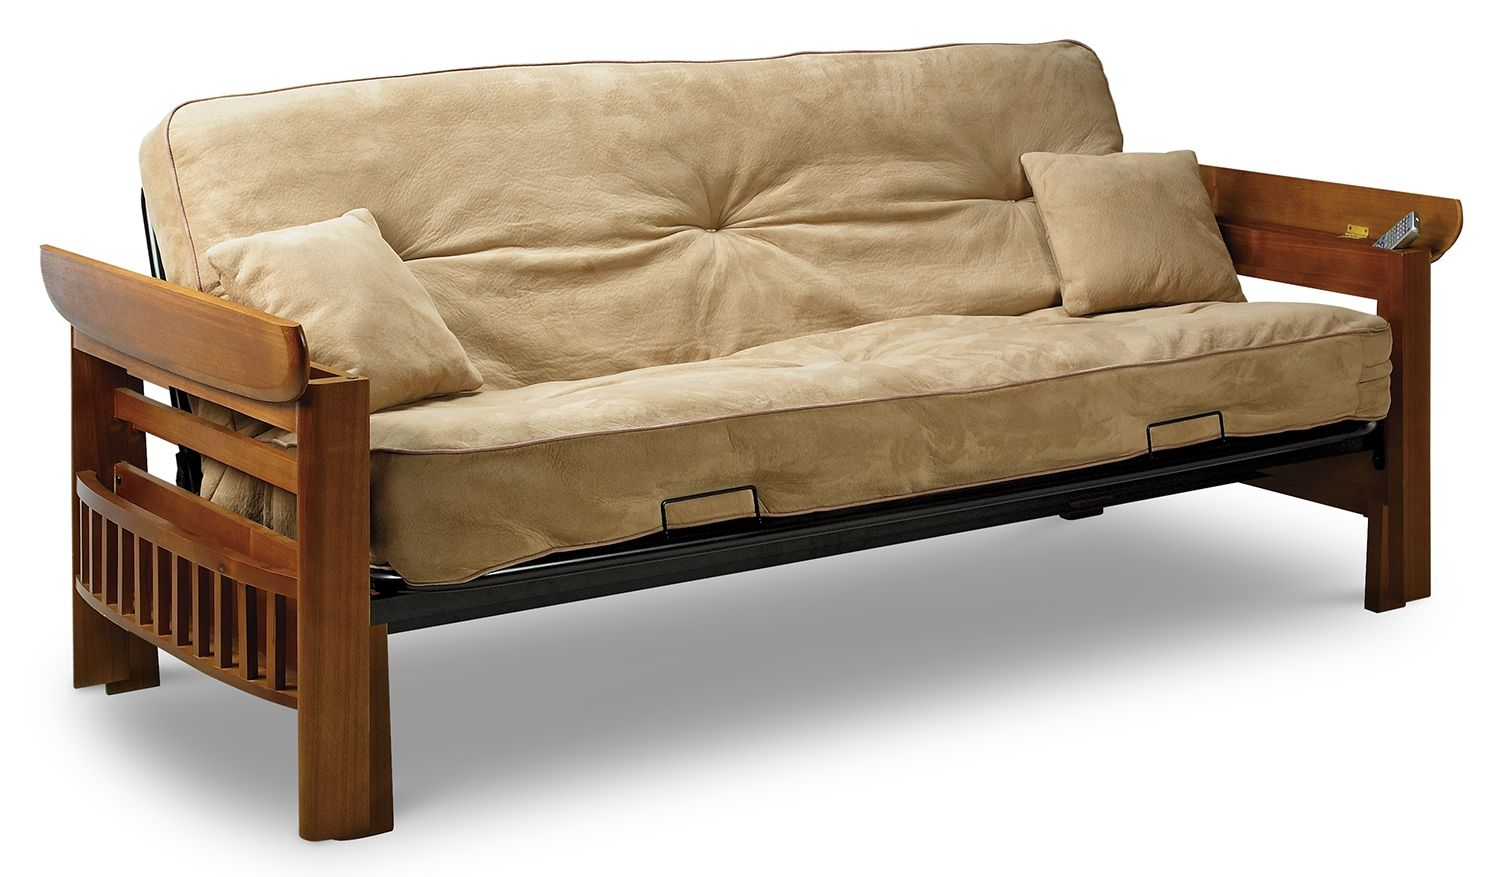 futon sofa bed orlando futon orlando alluring shocking futons at